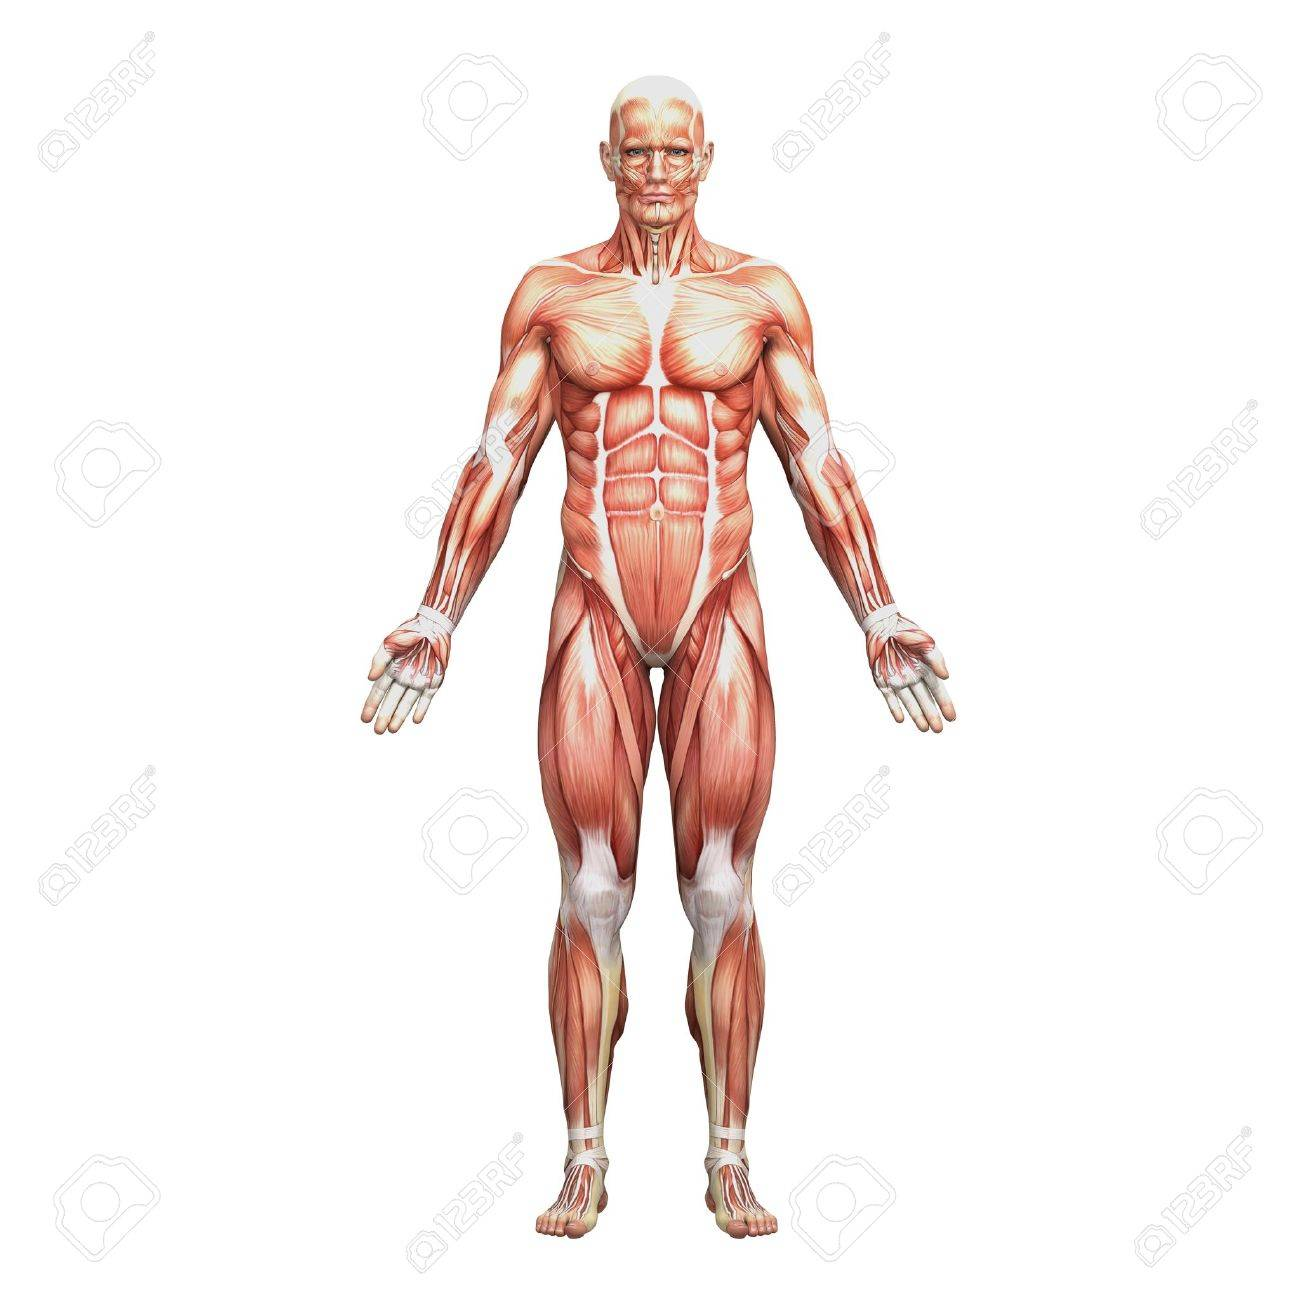 Male Anatomy And Muscles Stock Photo, Picture And Royalty Free Image ...